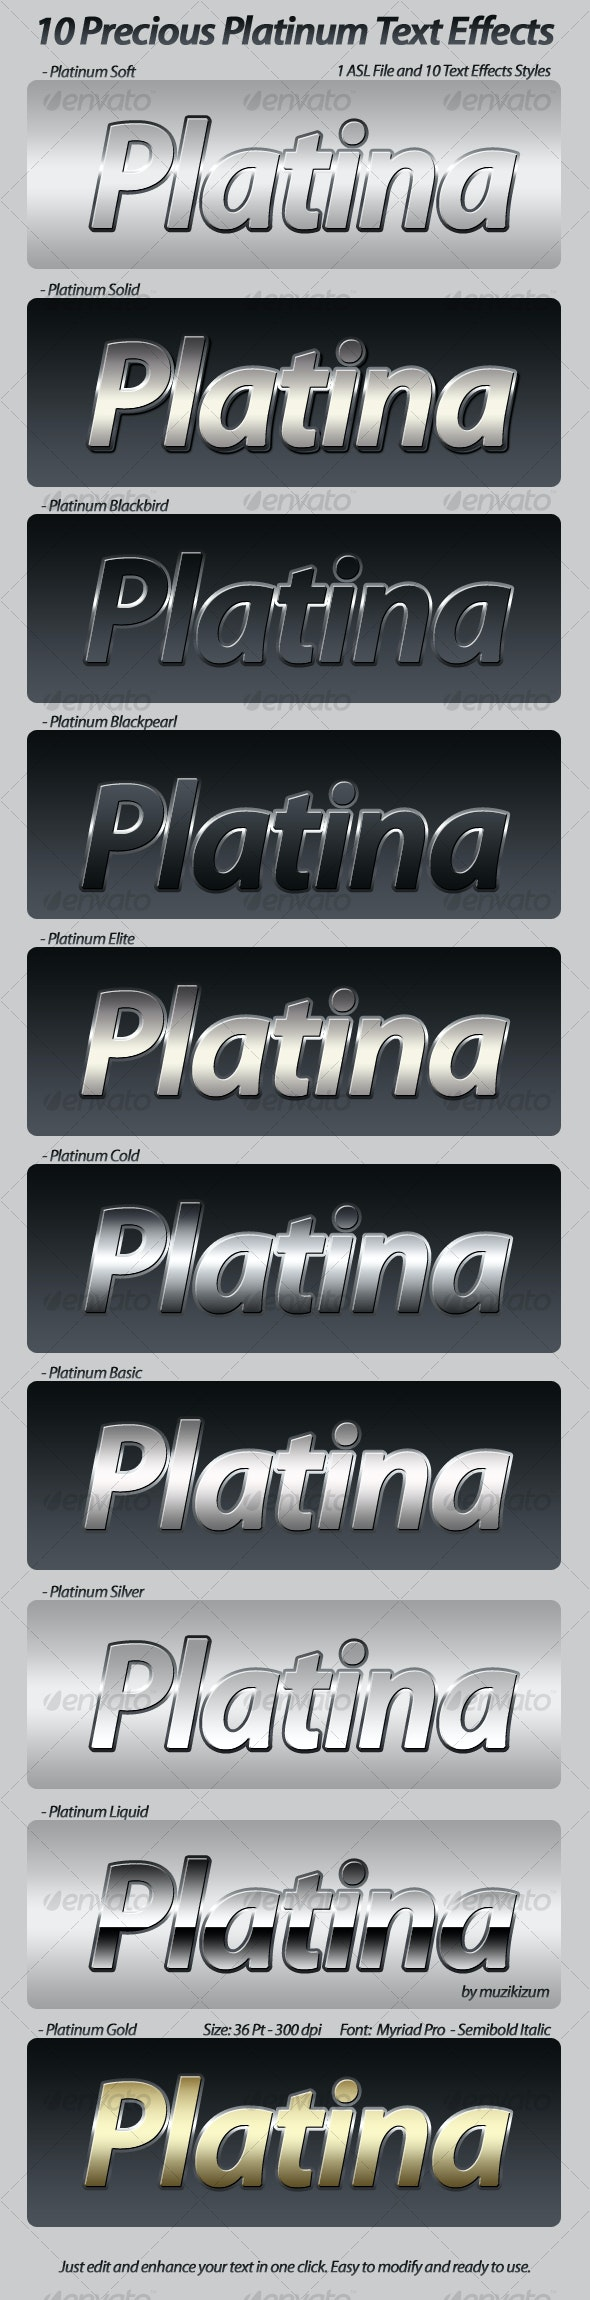 Precious Platinum Photoshop Text Effects & Styles - Text Effects Styles